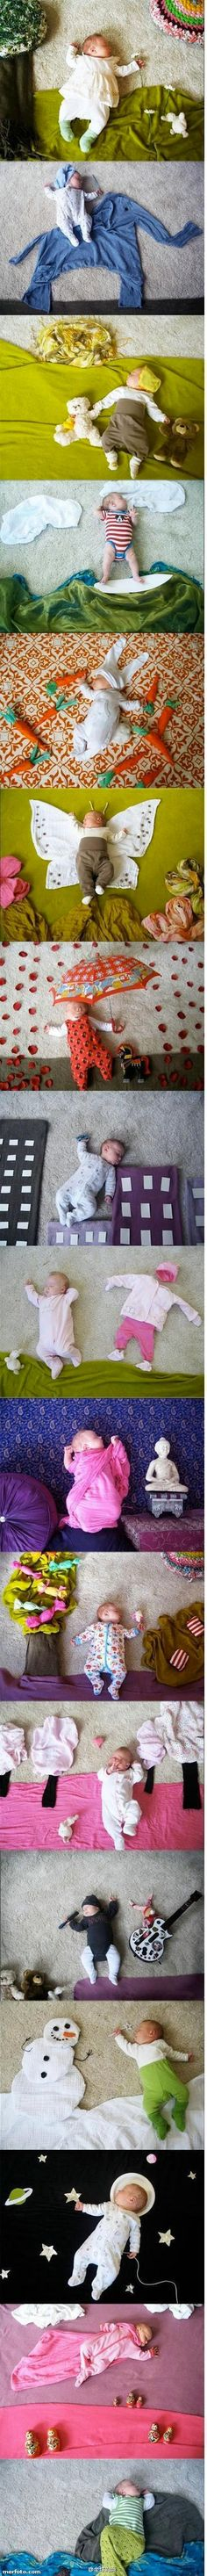 Interesting Way To Photograph Your Baby!